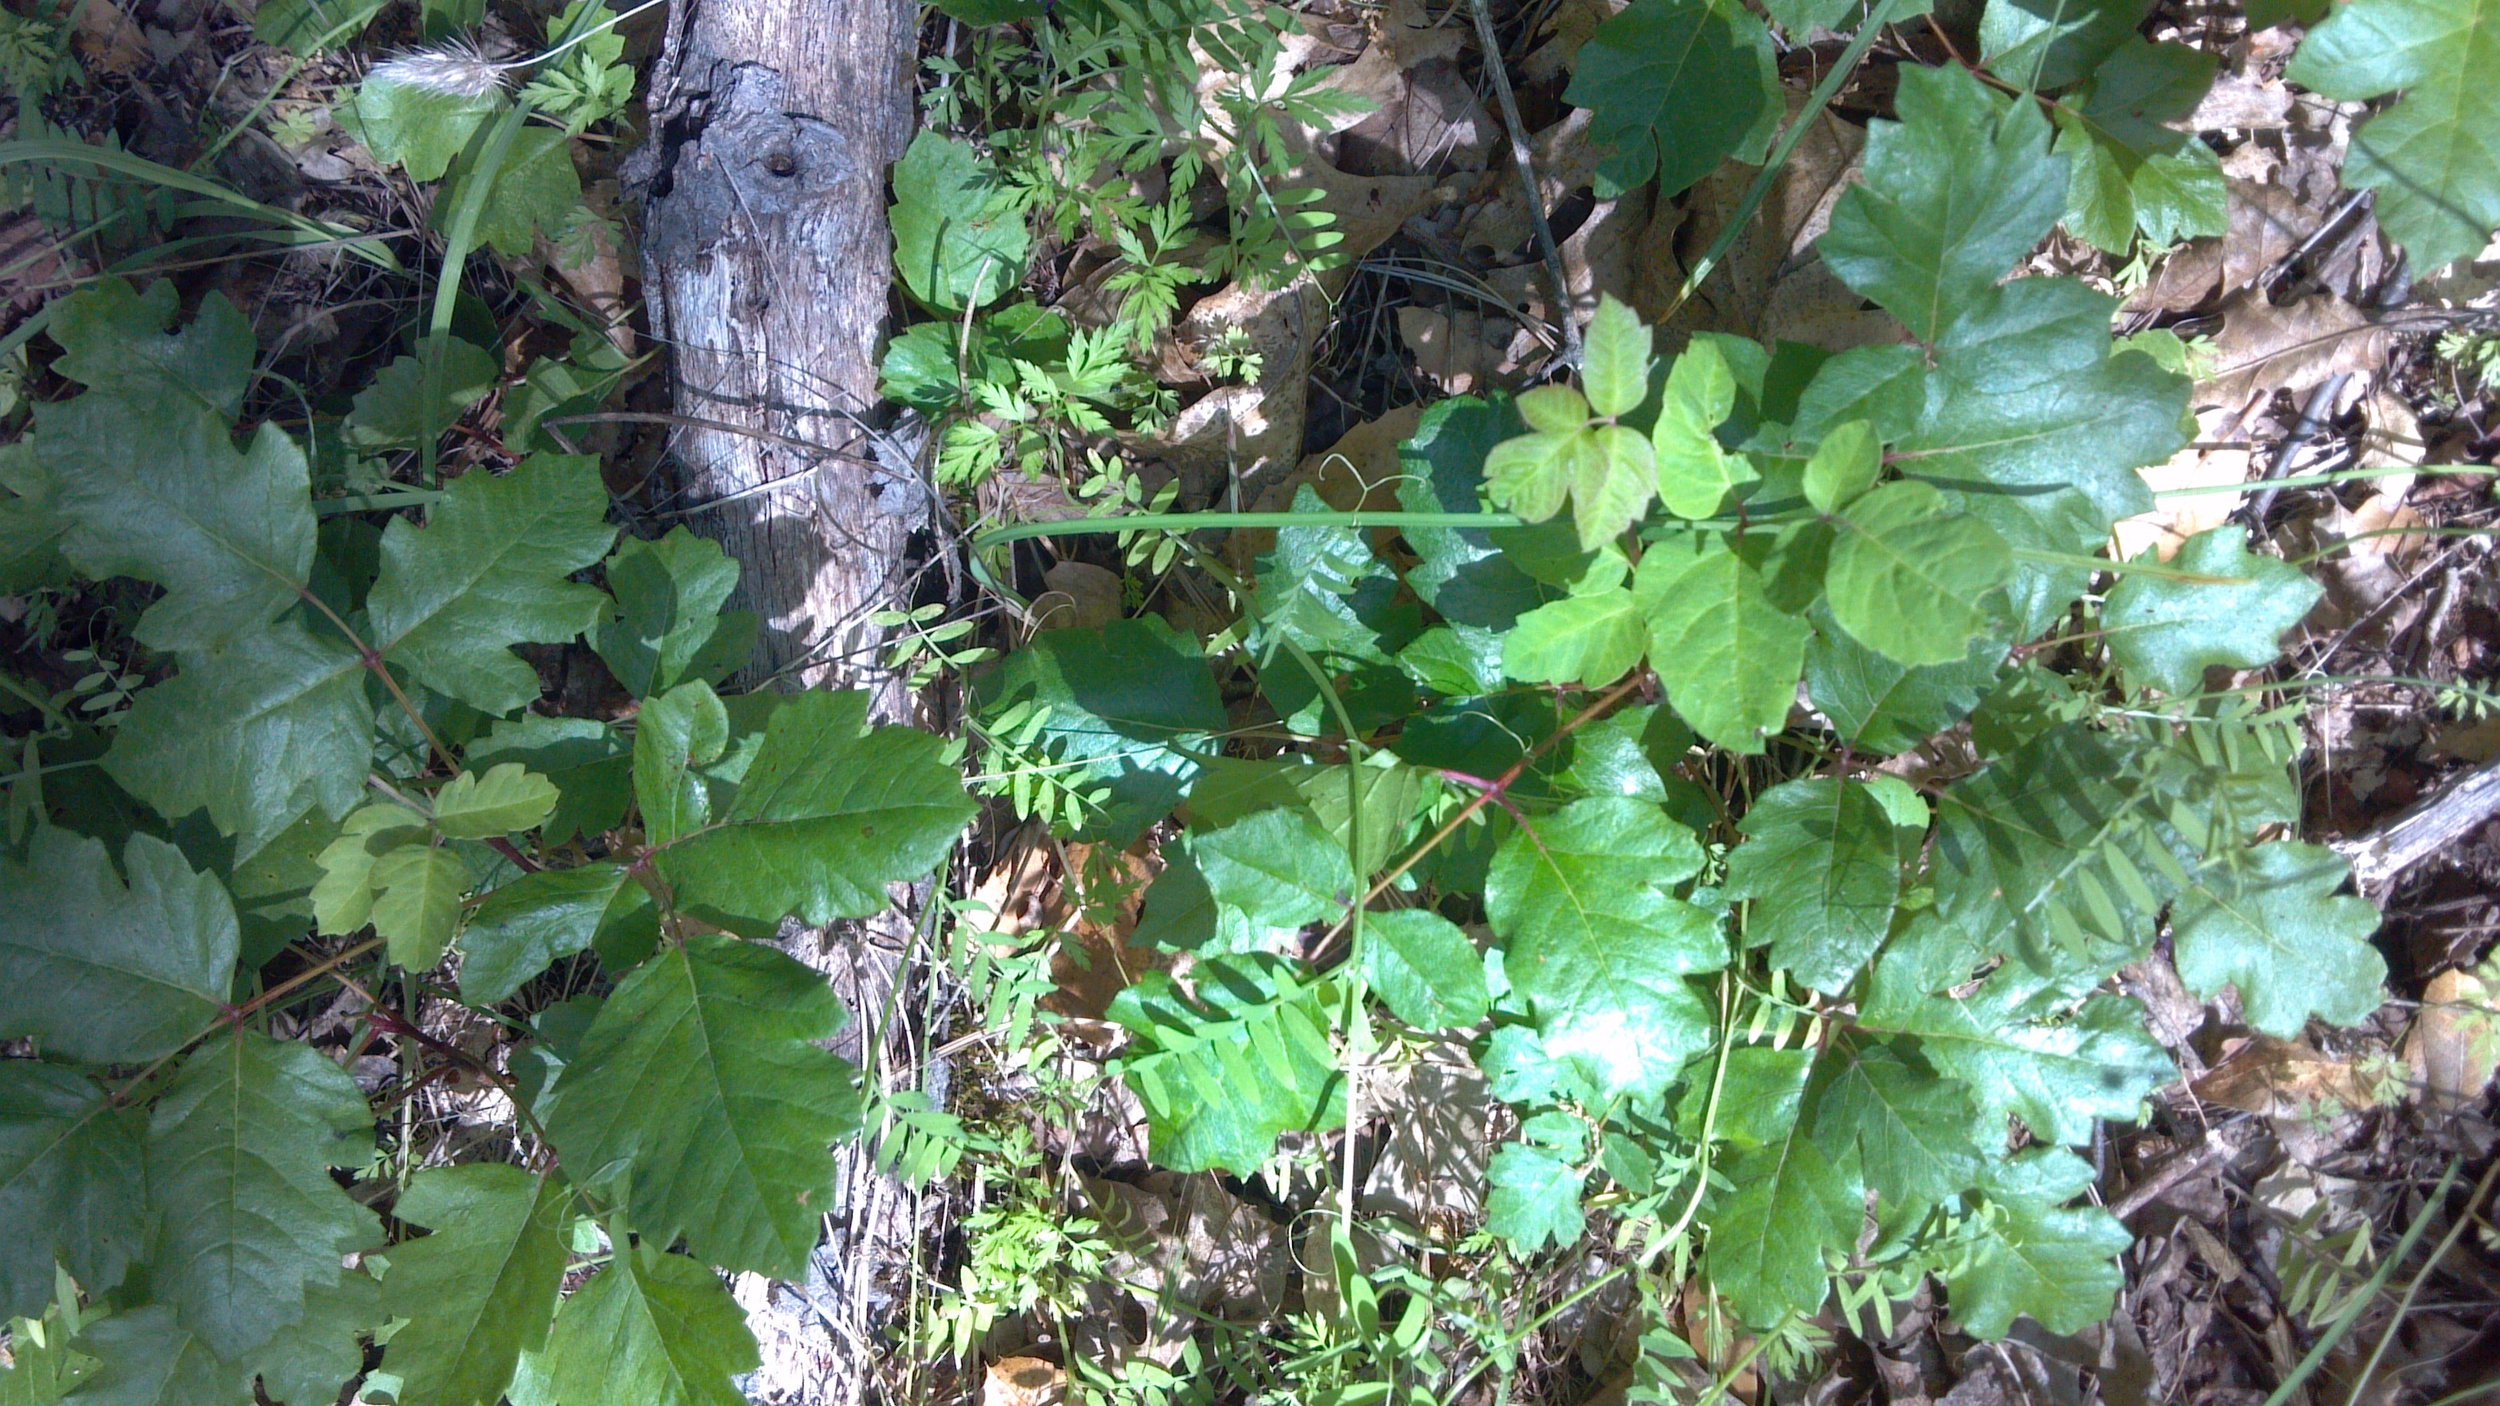 One of the challenges of hunting the Sutter's Mill meteorite was Poison Oak. It was everywhere in the woods.